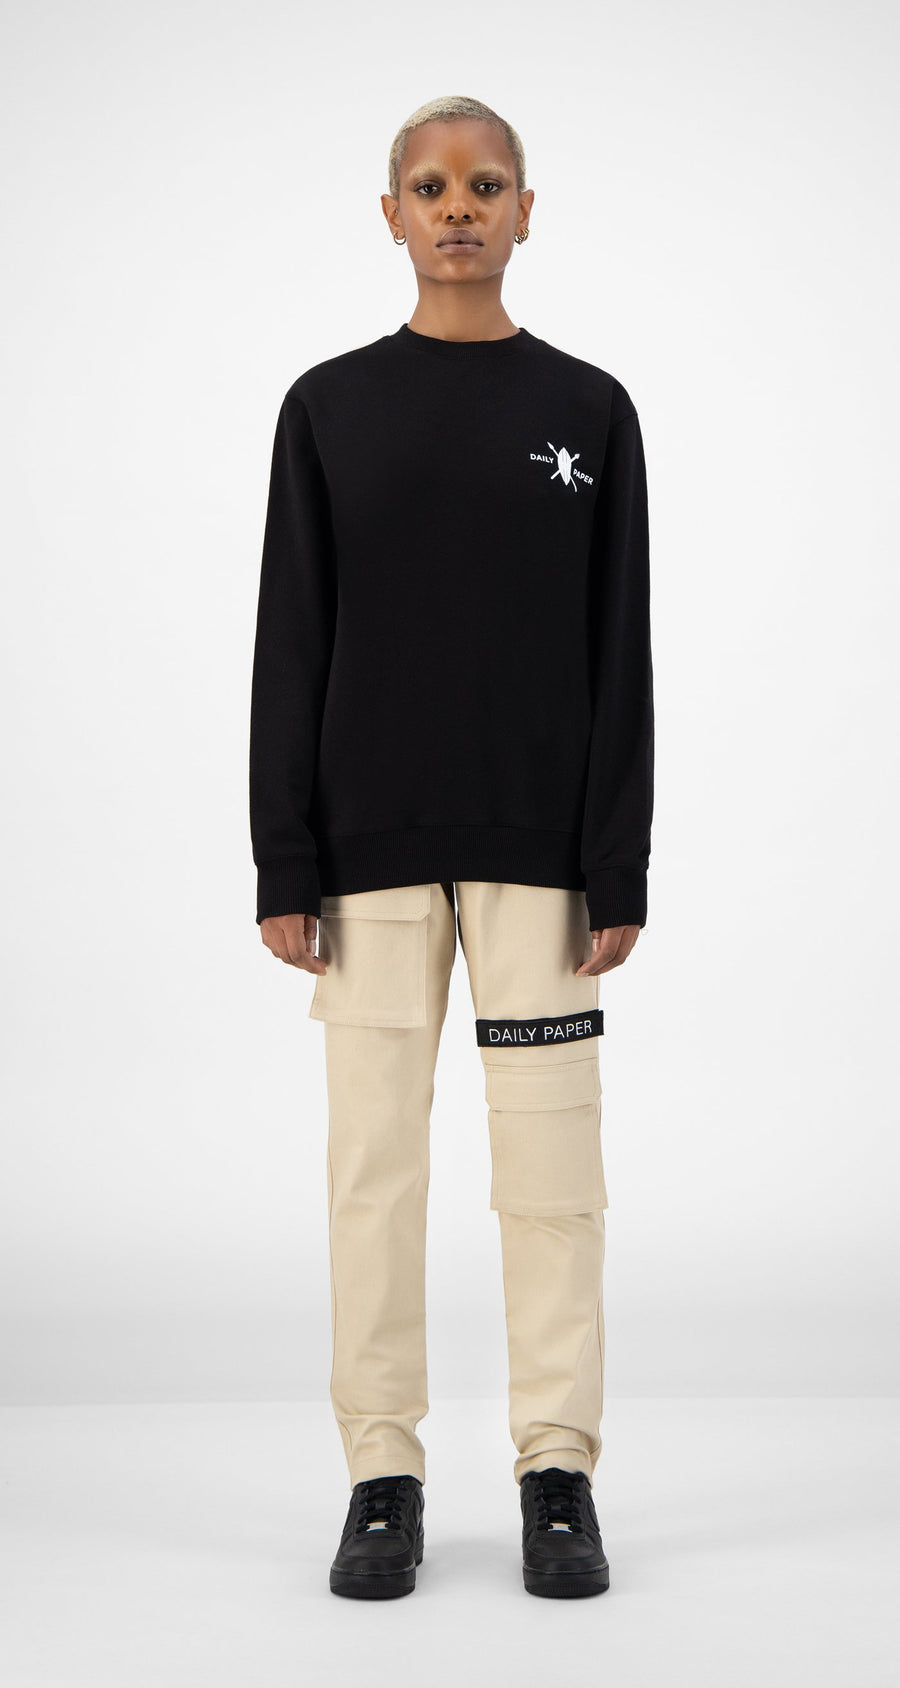 Daily Paper - Black NYC Store Sweater - Women Front